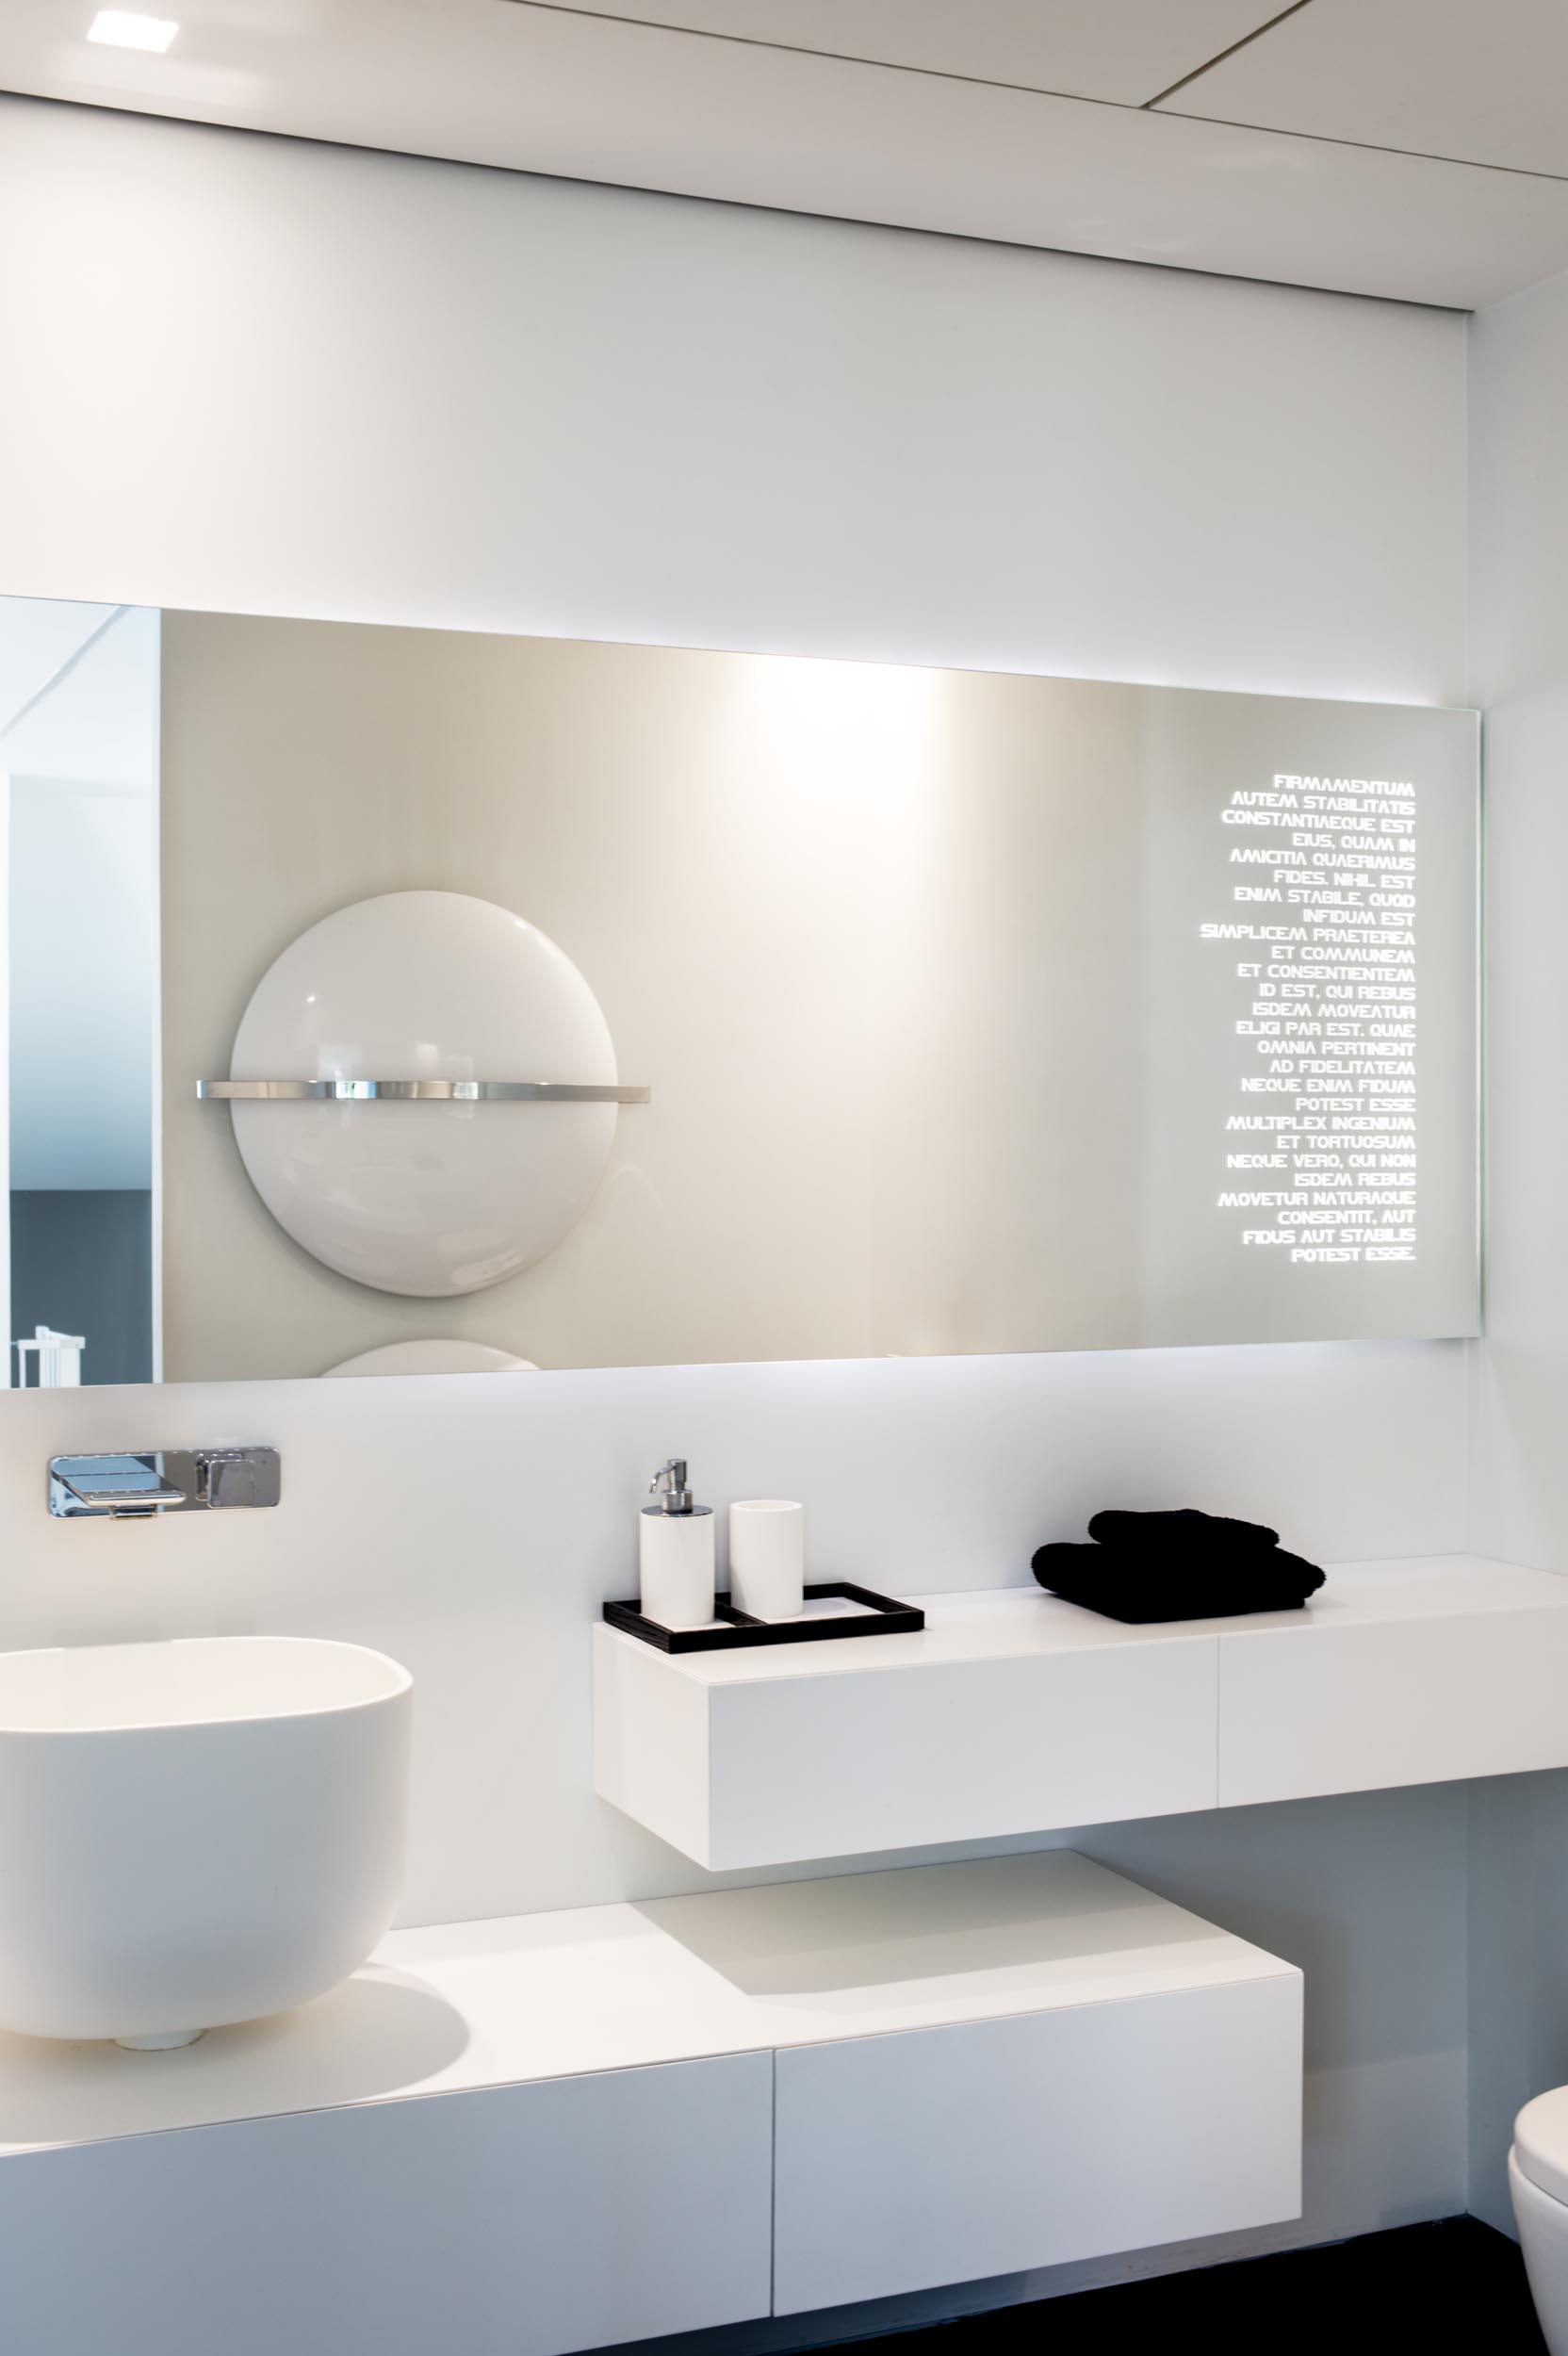 A modern bathroom white a white vanity and backlit mirror.